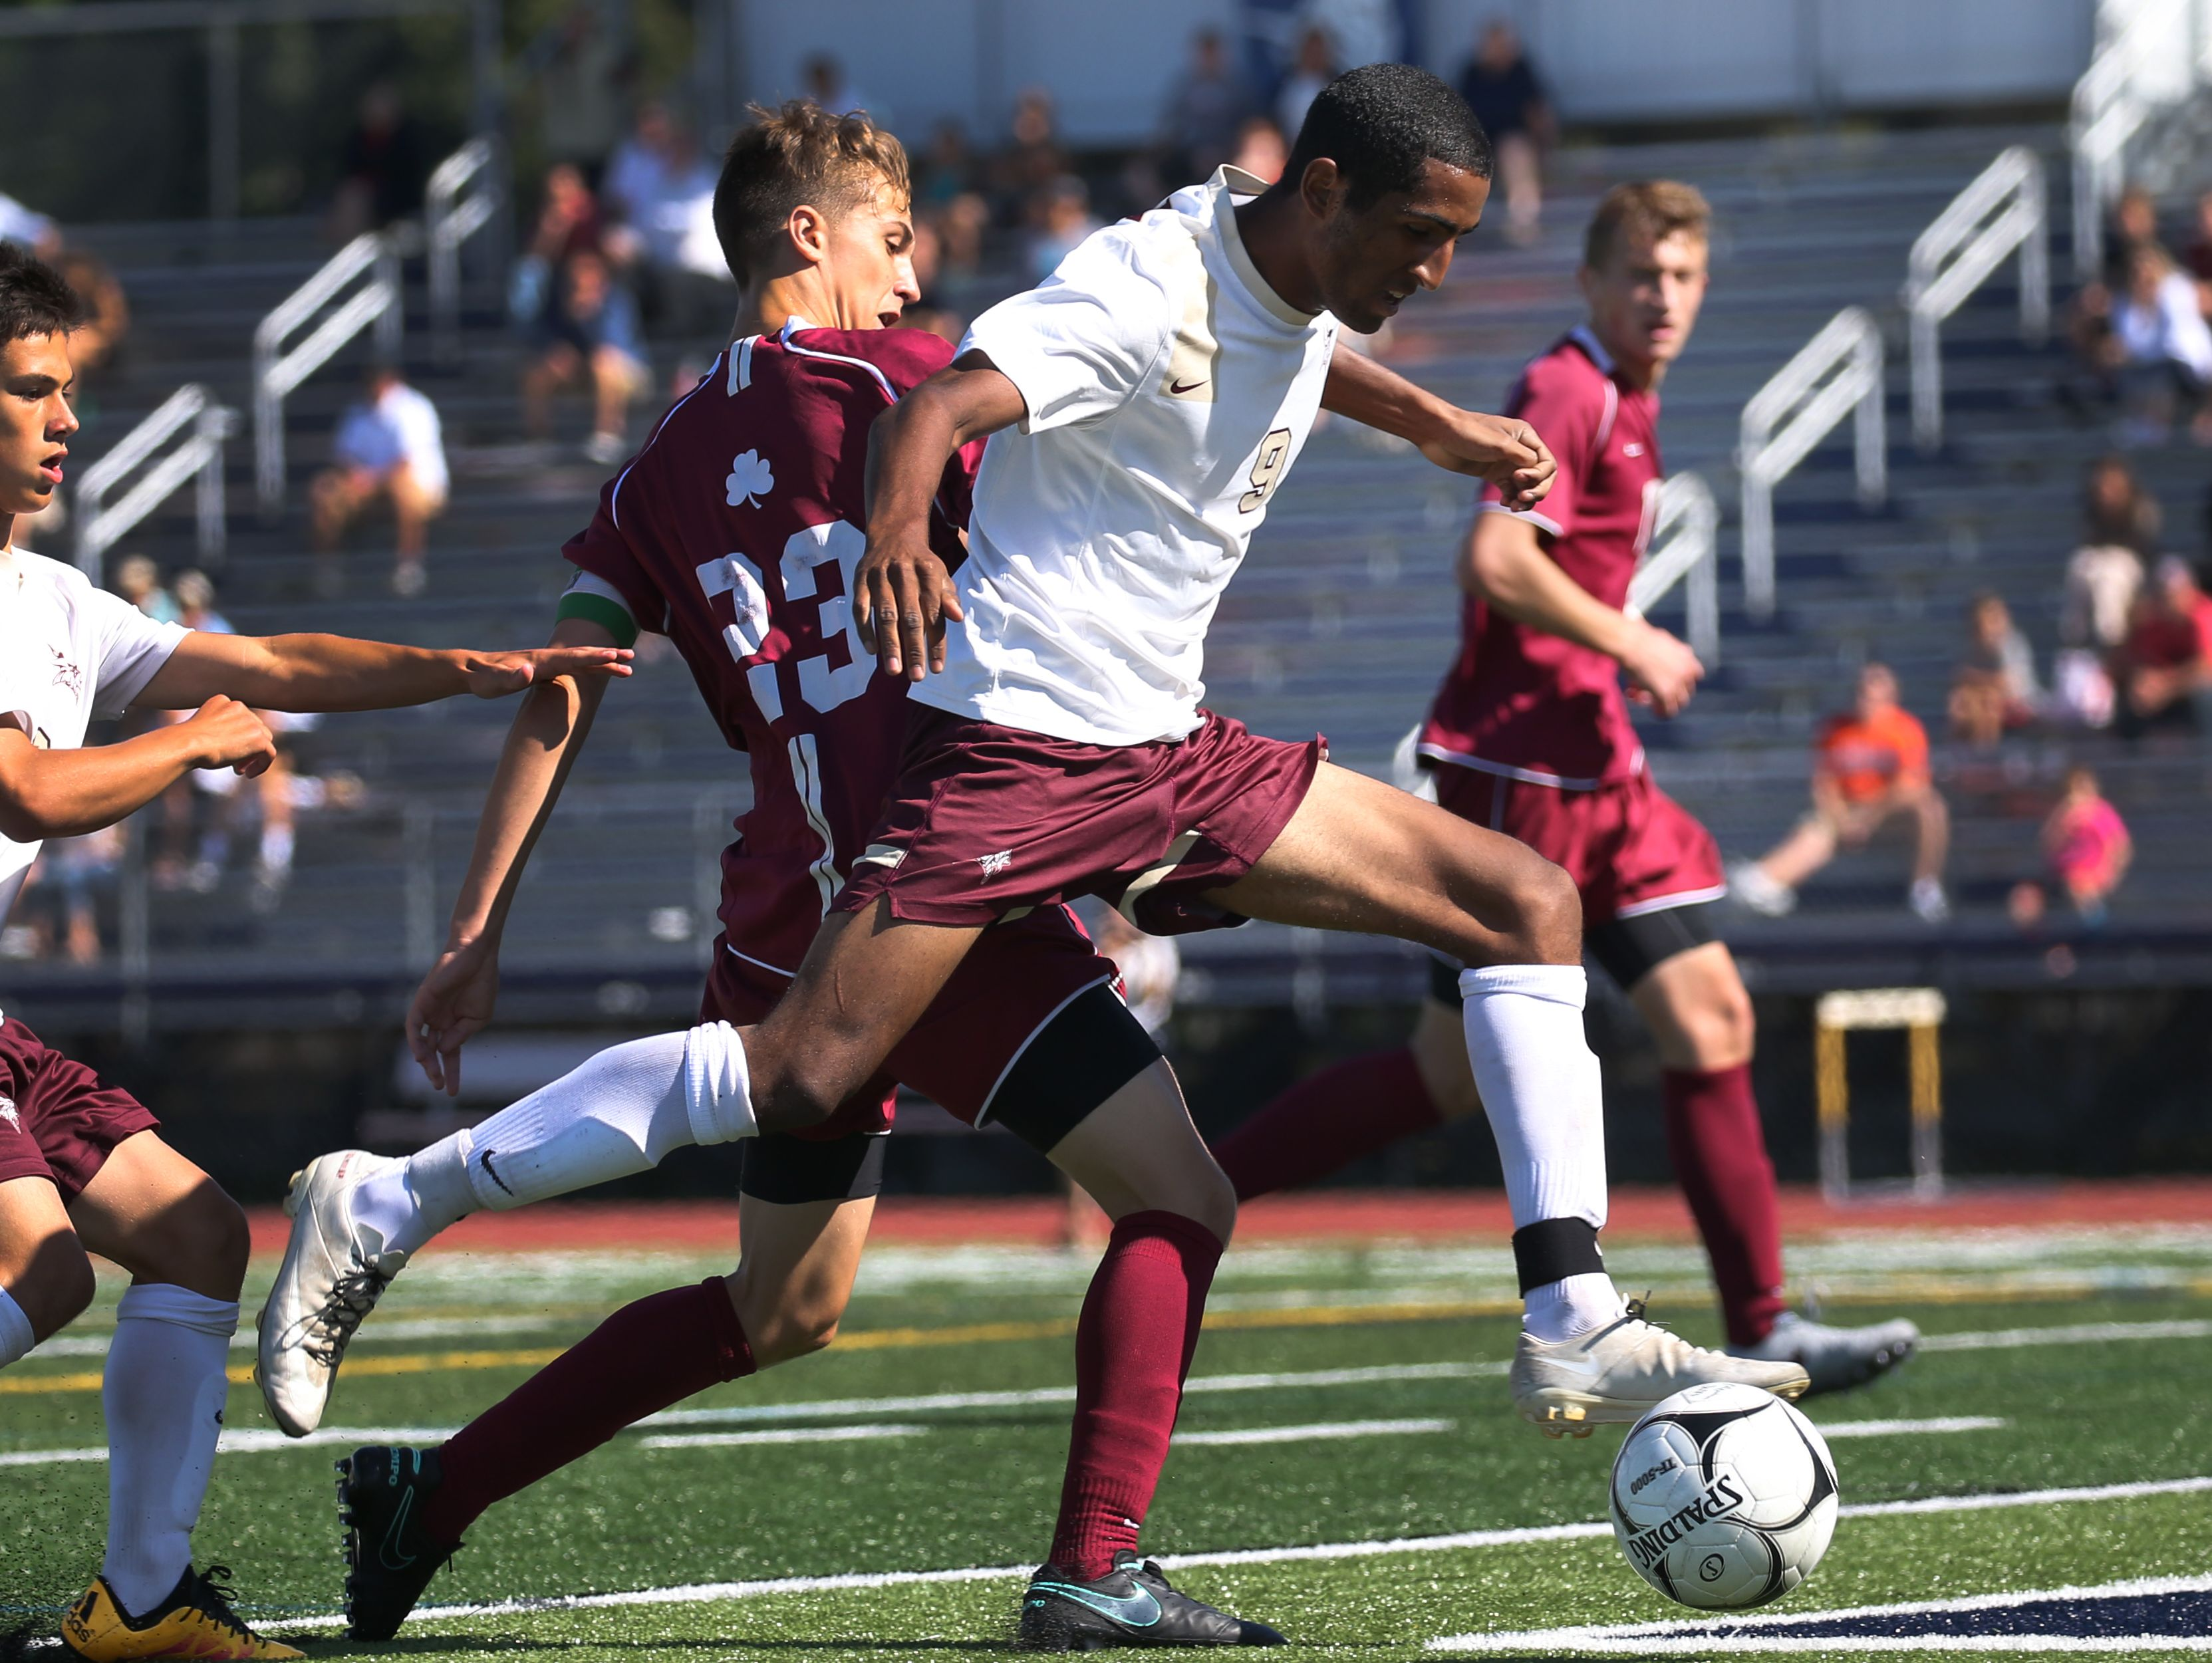 Adrian Padilla controls the ball for Pittsford Mendon during a season-opening win over Aquinas.